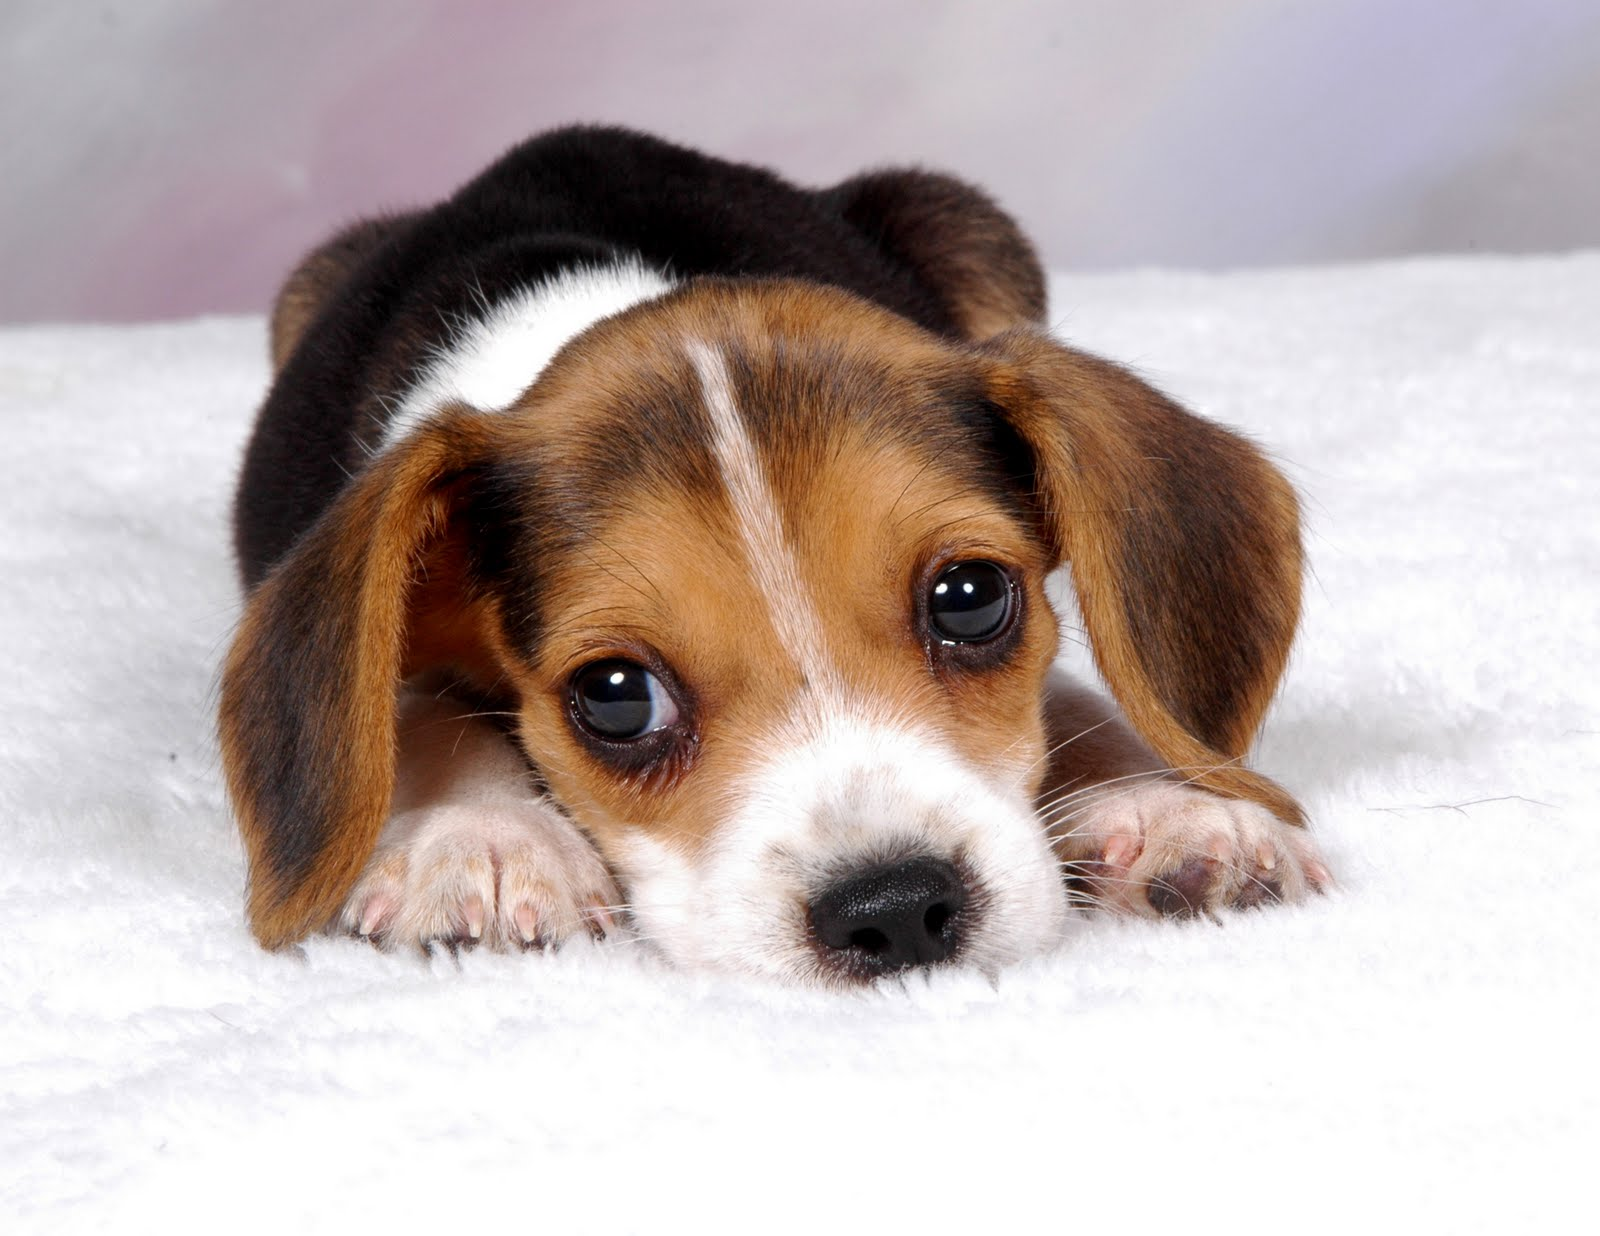 Beagle Puppy Backgrounds wallpaper Beagle Puppy Backgrounds hd 1600x1236